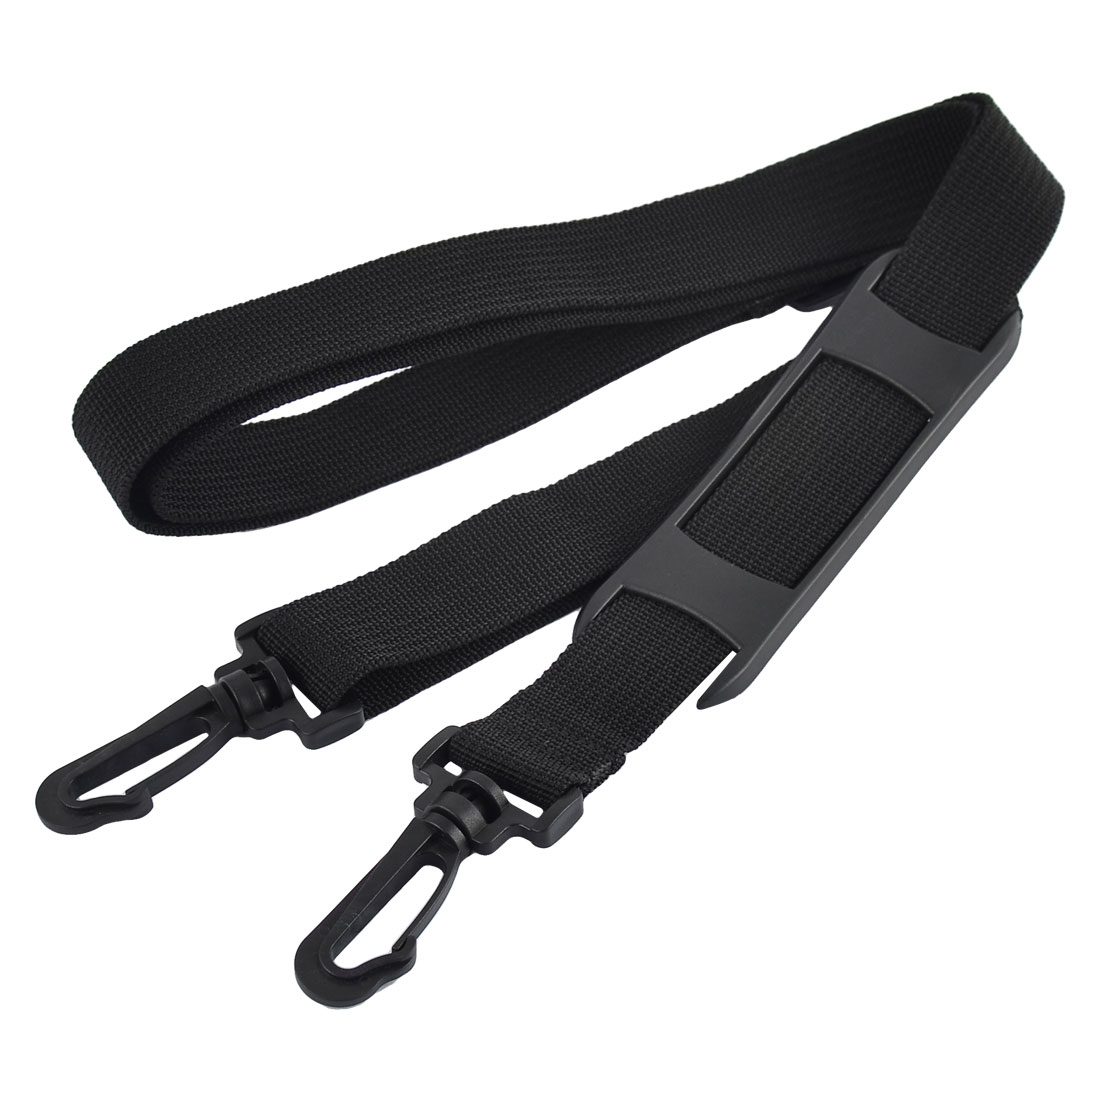 Household Travel Nylon SLR Camera Single Shoulder Neck Belt Luggage Straps Black